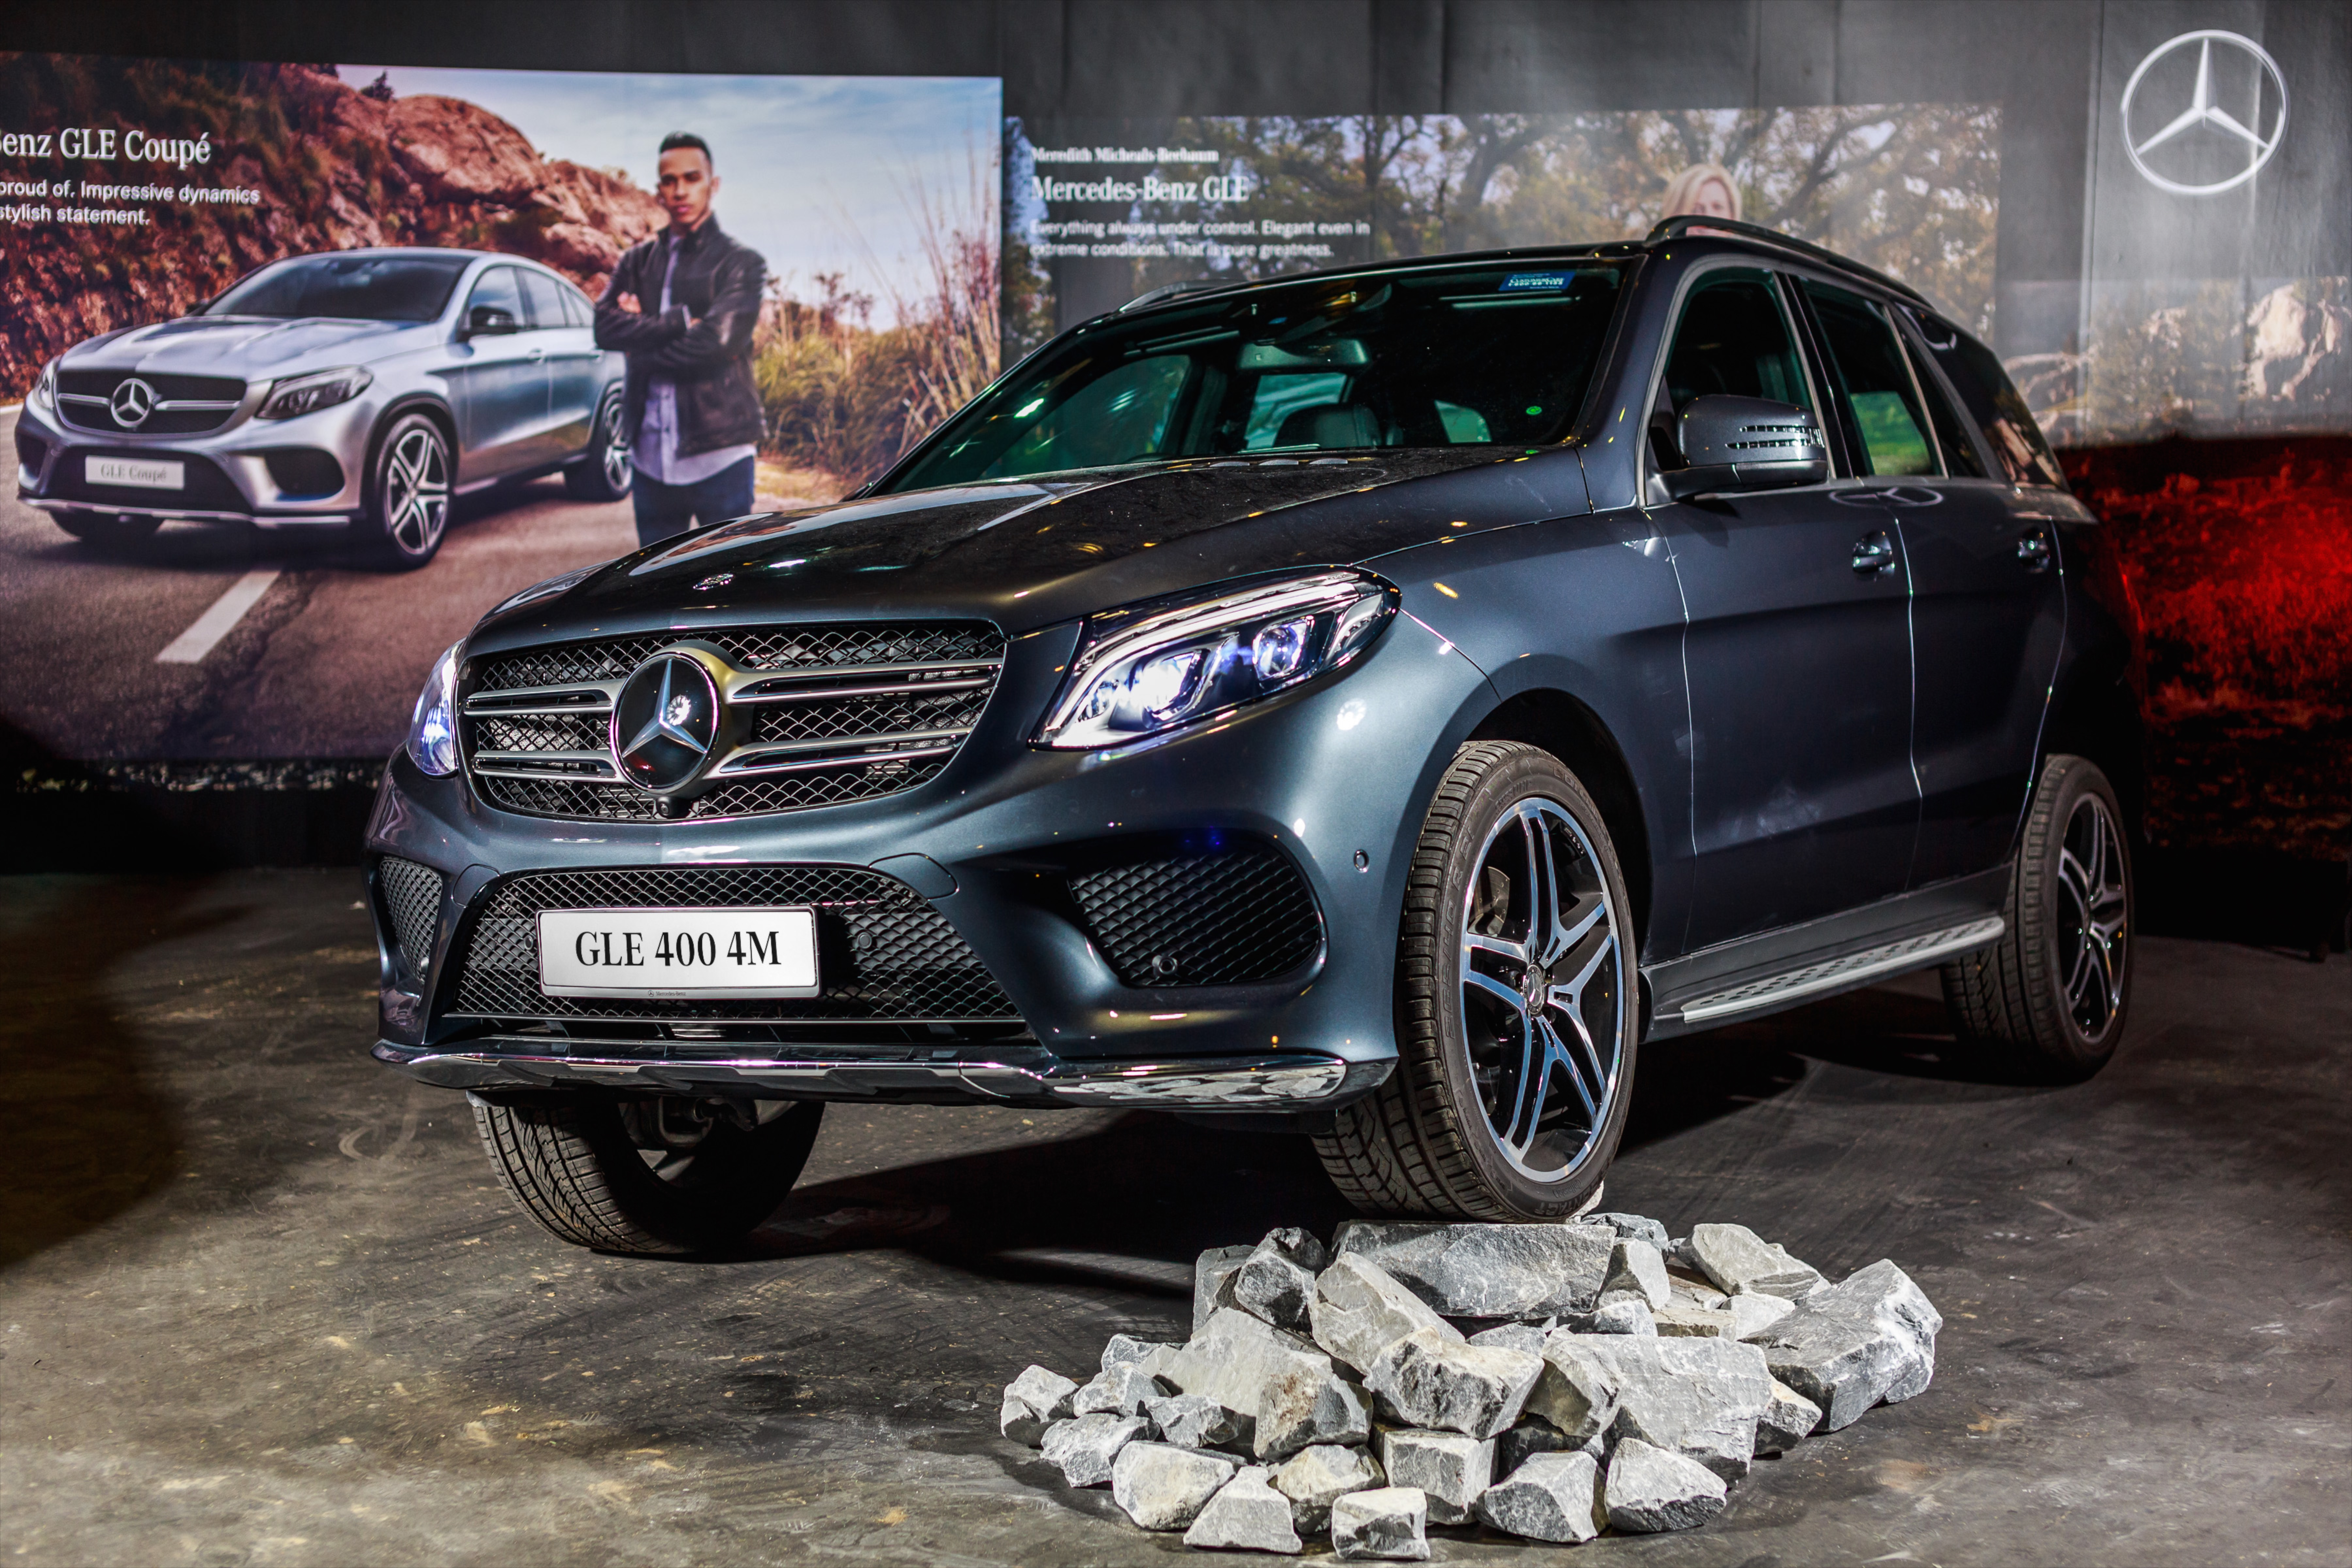 2016 Mercedes Suv >> Mercedes-Benz GLE 400, GLE 250 d debut in Malaysia Image 428586